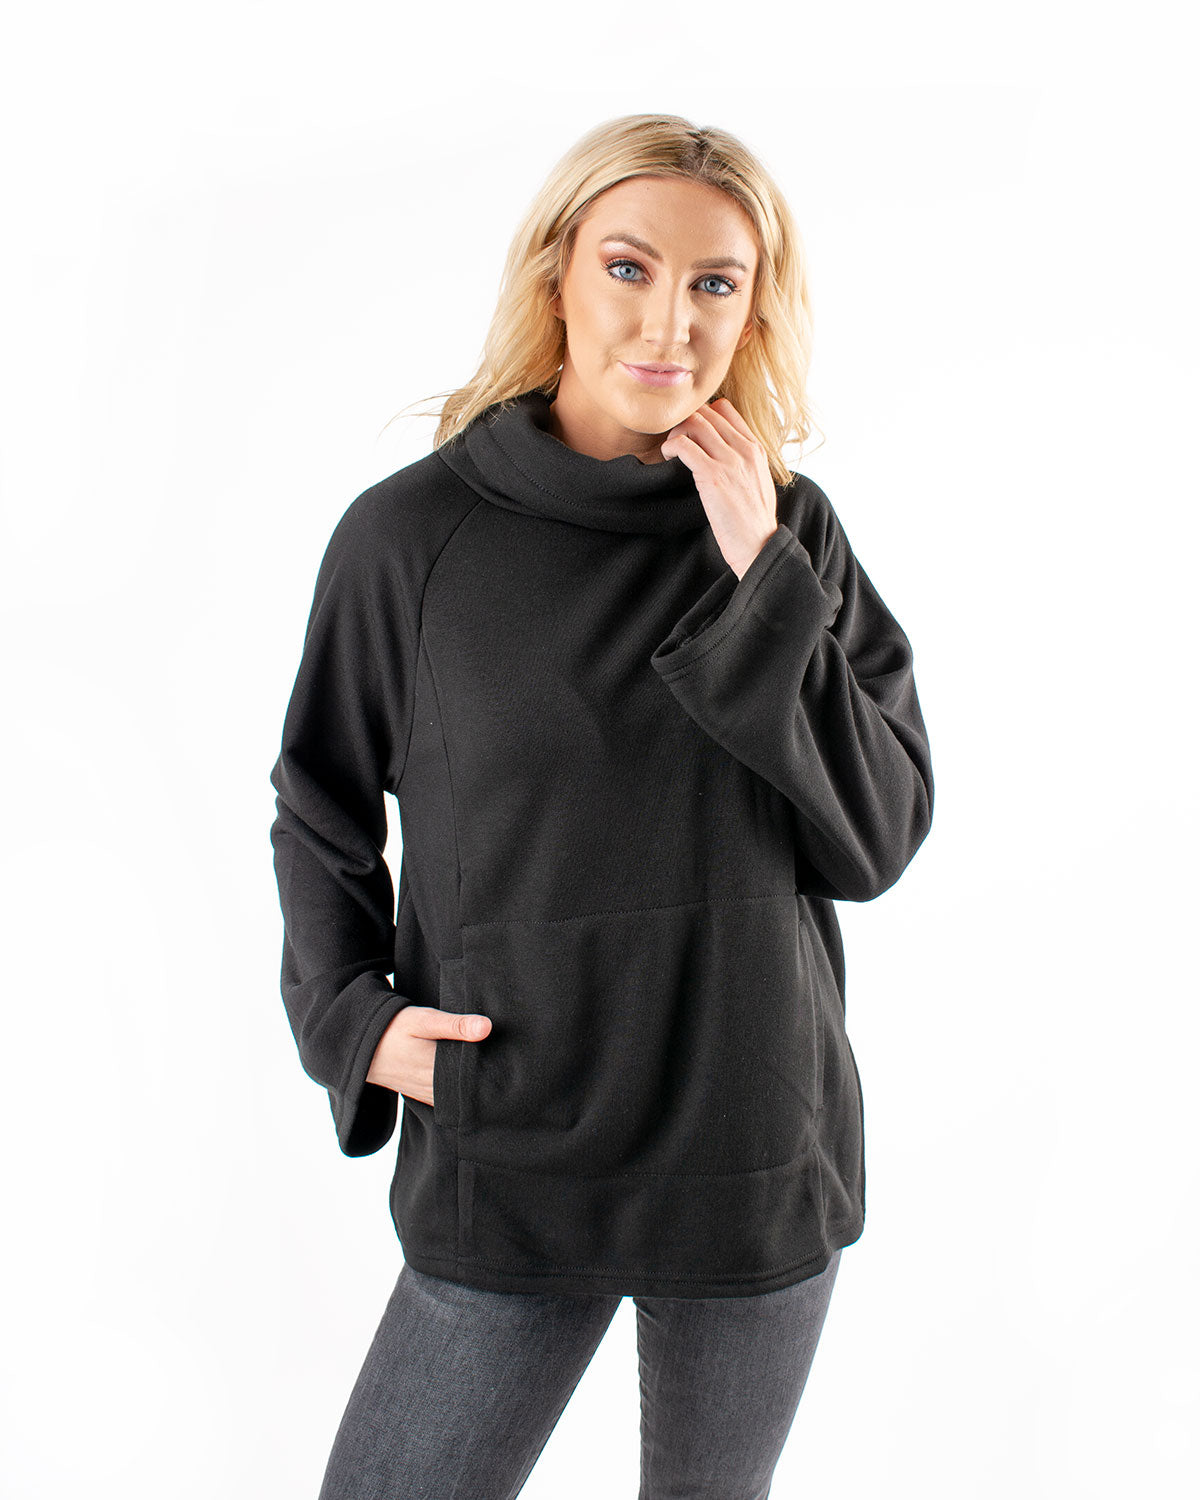 The Jordyn Loft Fleece Pullover